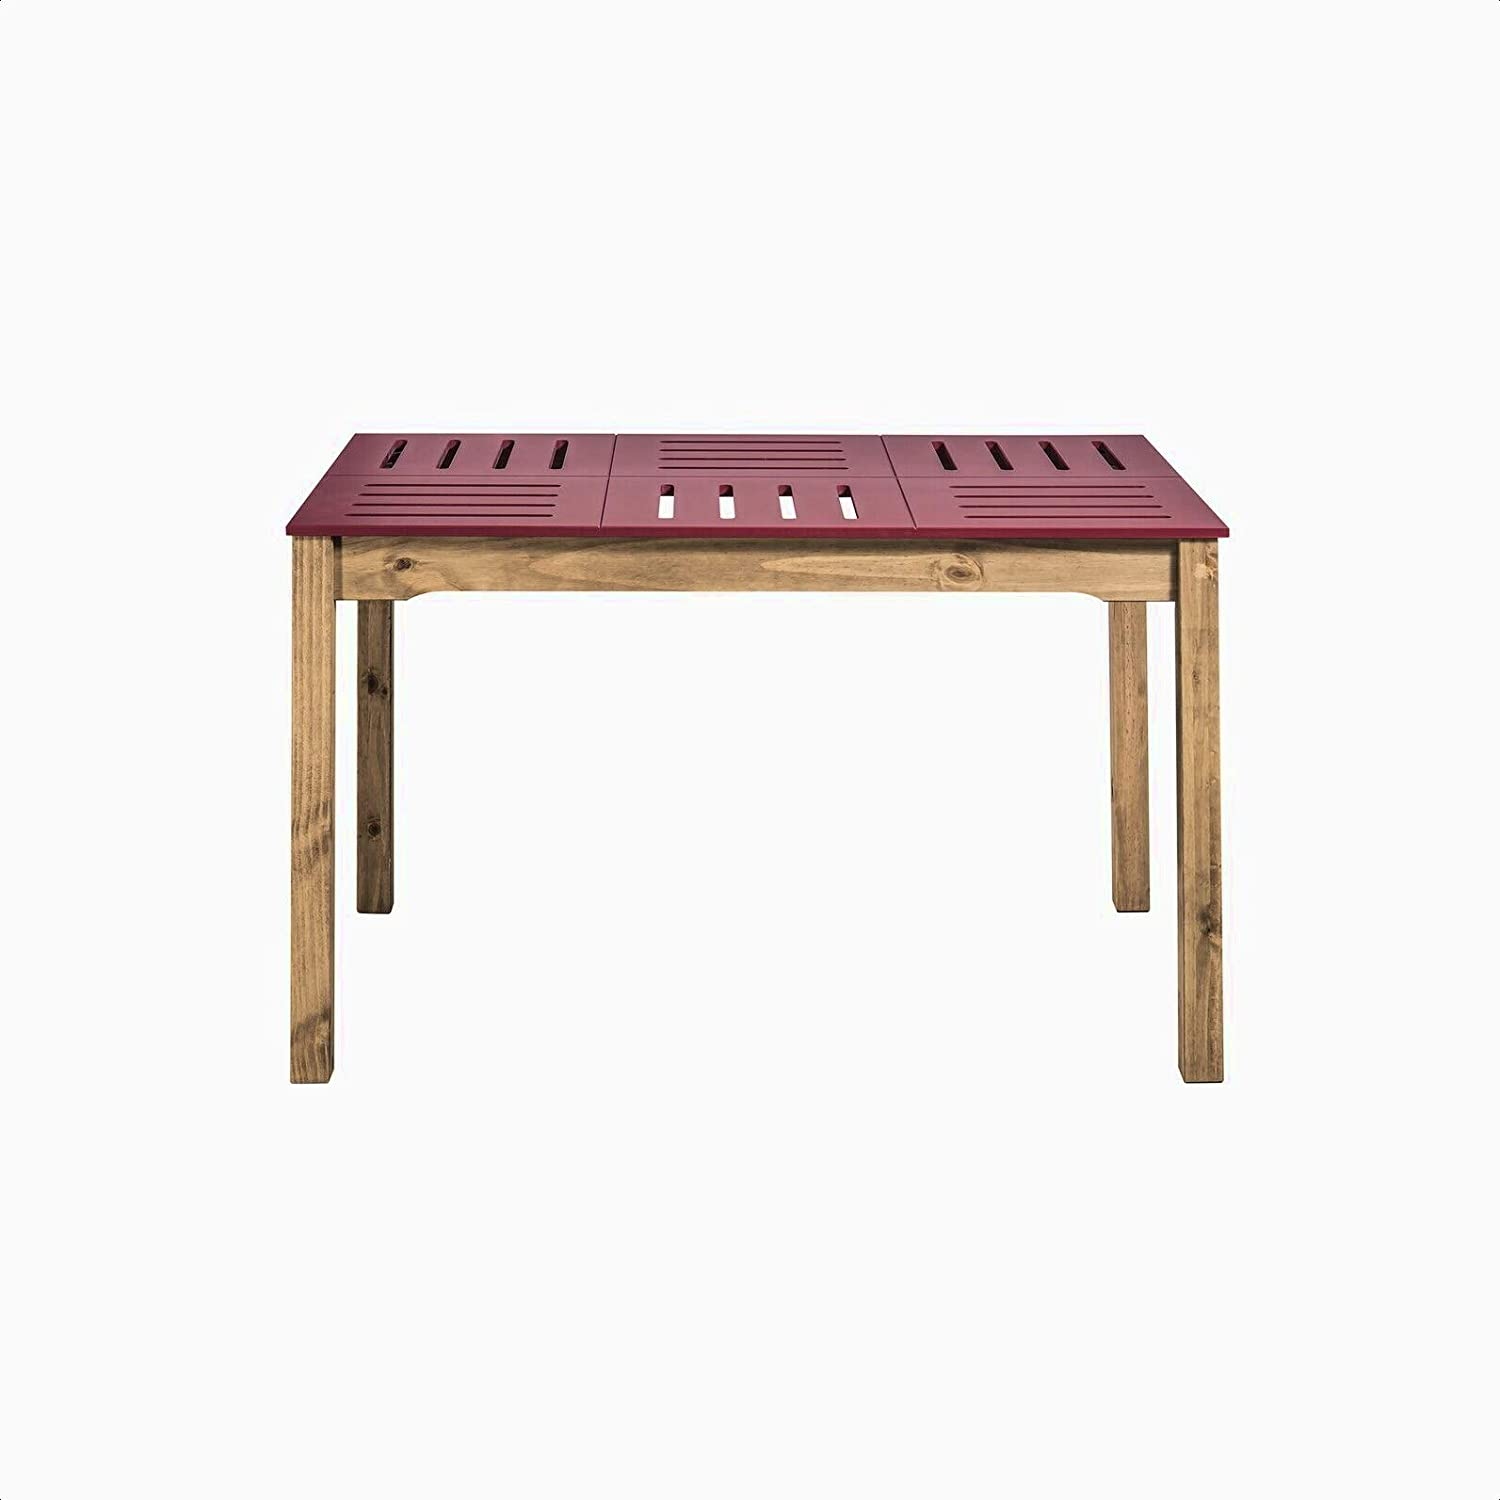 Wiggin Solid Wood Dining Wholesale Table Details: Pine store Top Material